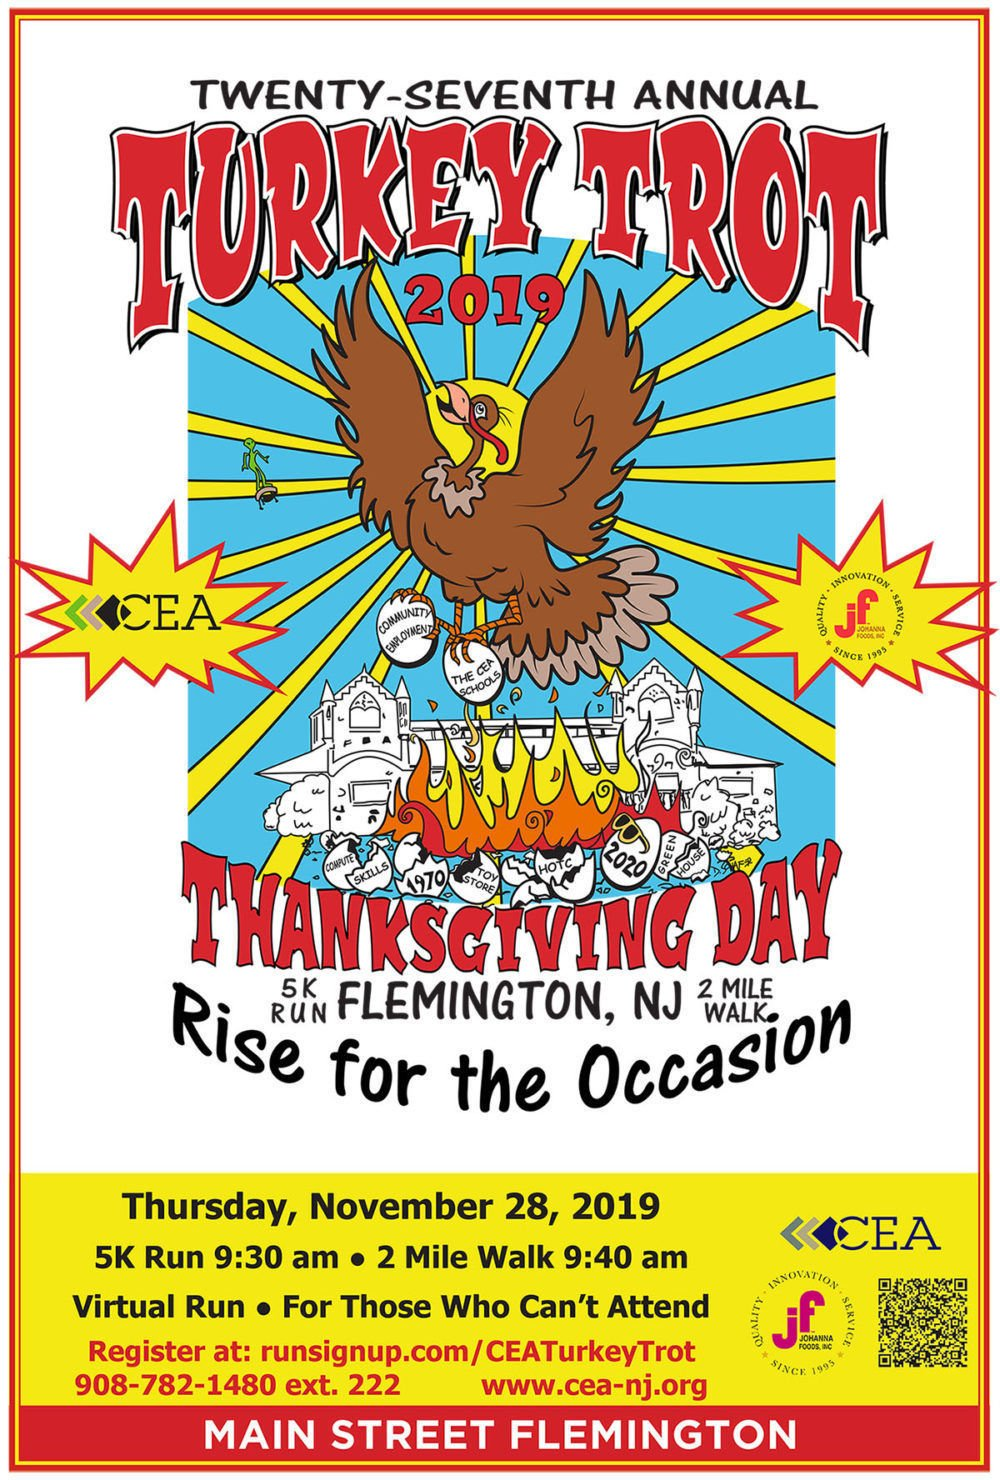 CEA Turkey Trot celebrates 27th anniversary on Thursday, Nov. 28